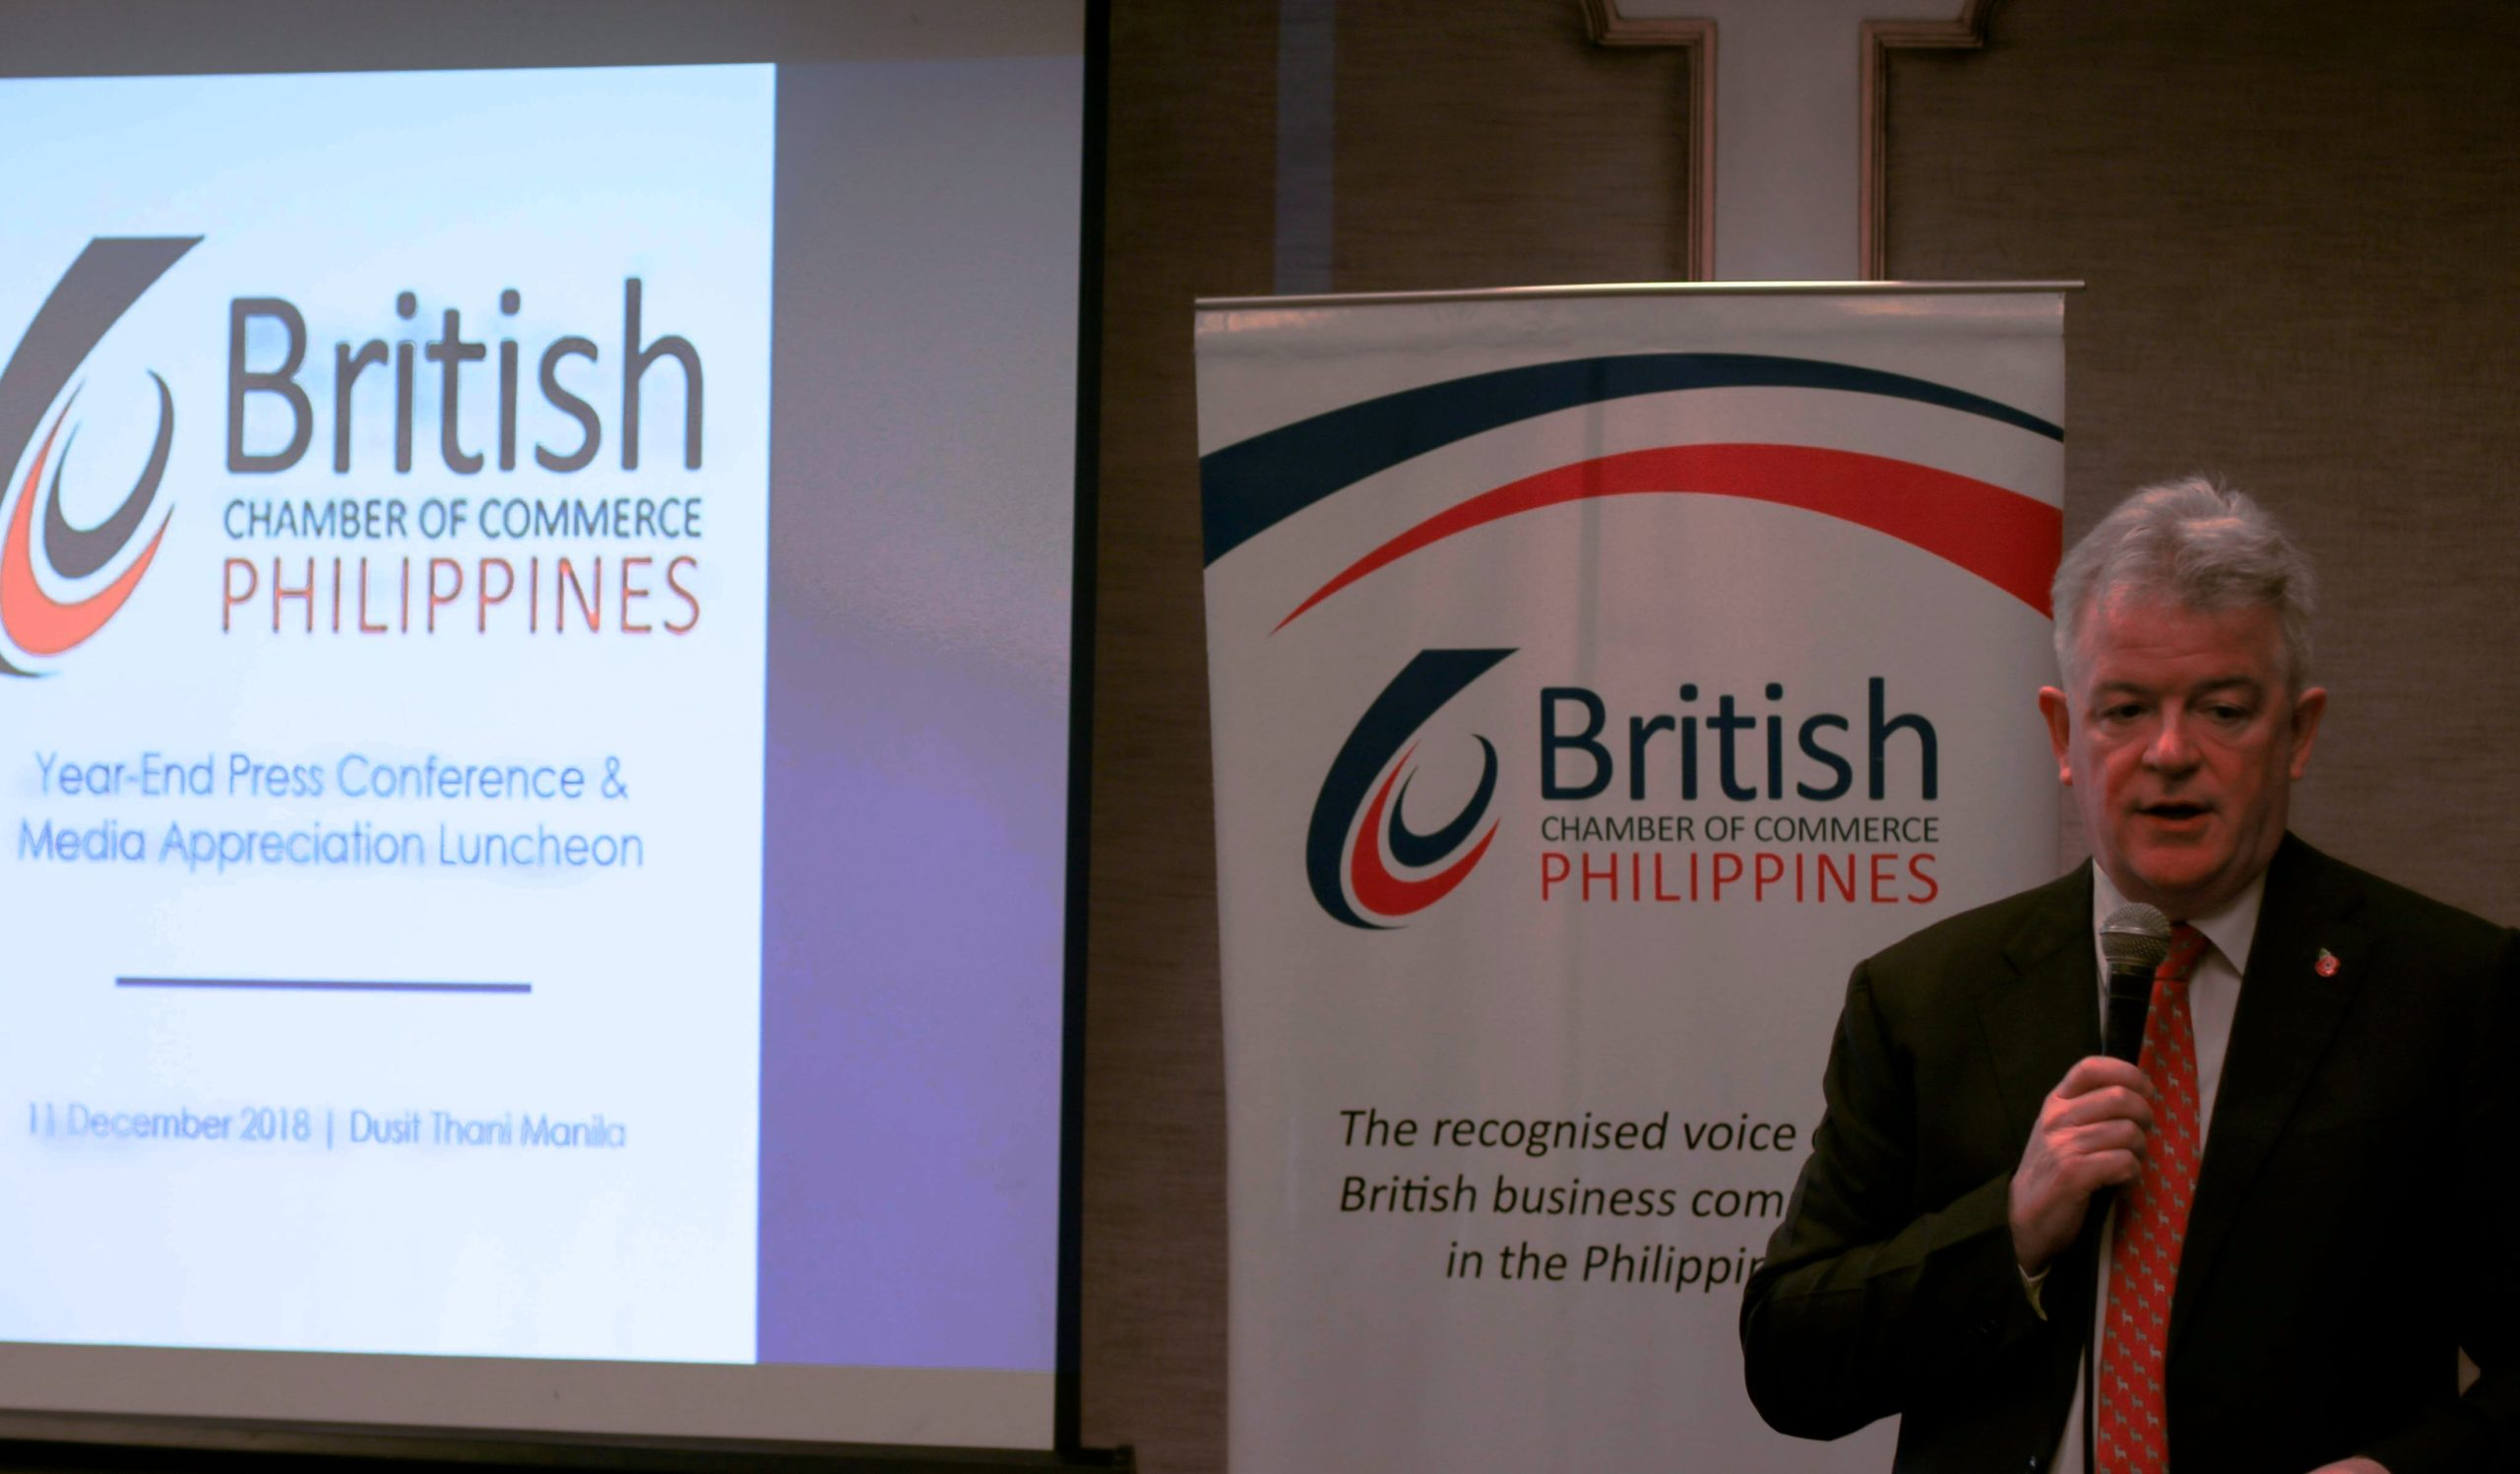 British Chamber of Commerce Philippines shares their milestones in 2018